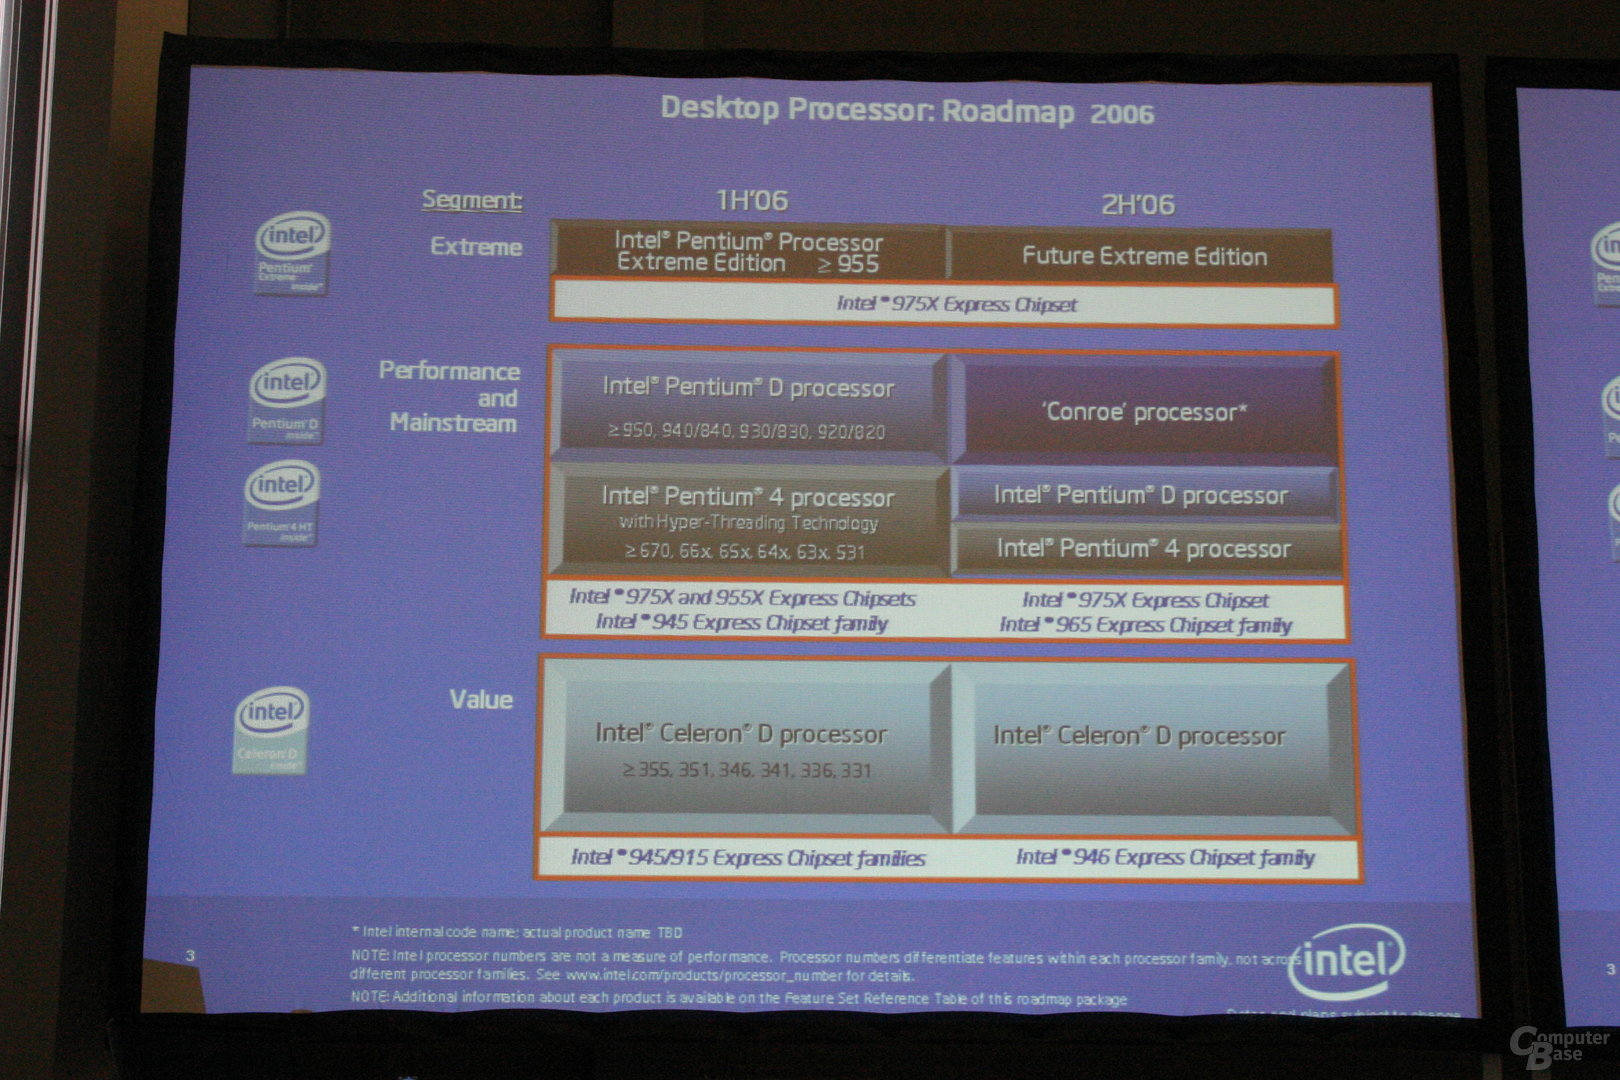 Intel Desktop-Roadmap 2006